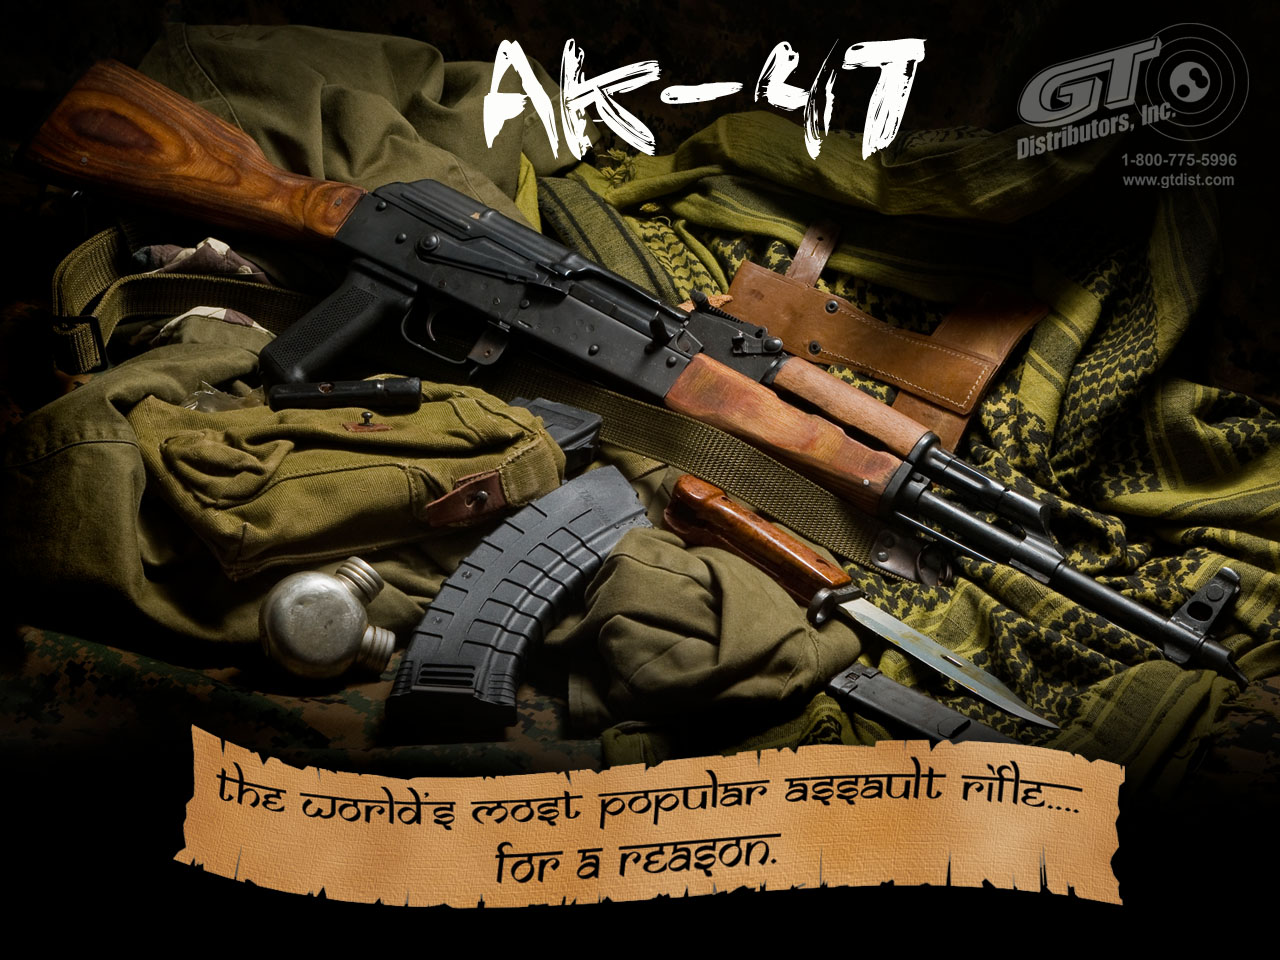 Best guns wallpapers ak 47 ak 47 images 2014 ak 47 wallpapers 1280x960